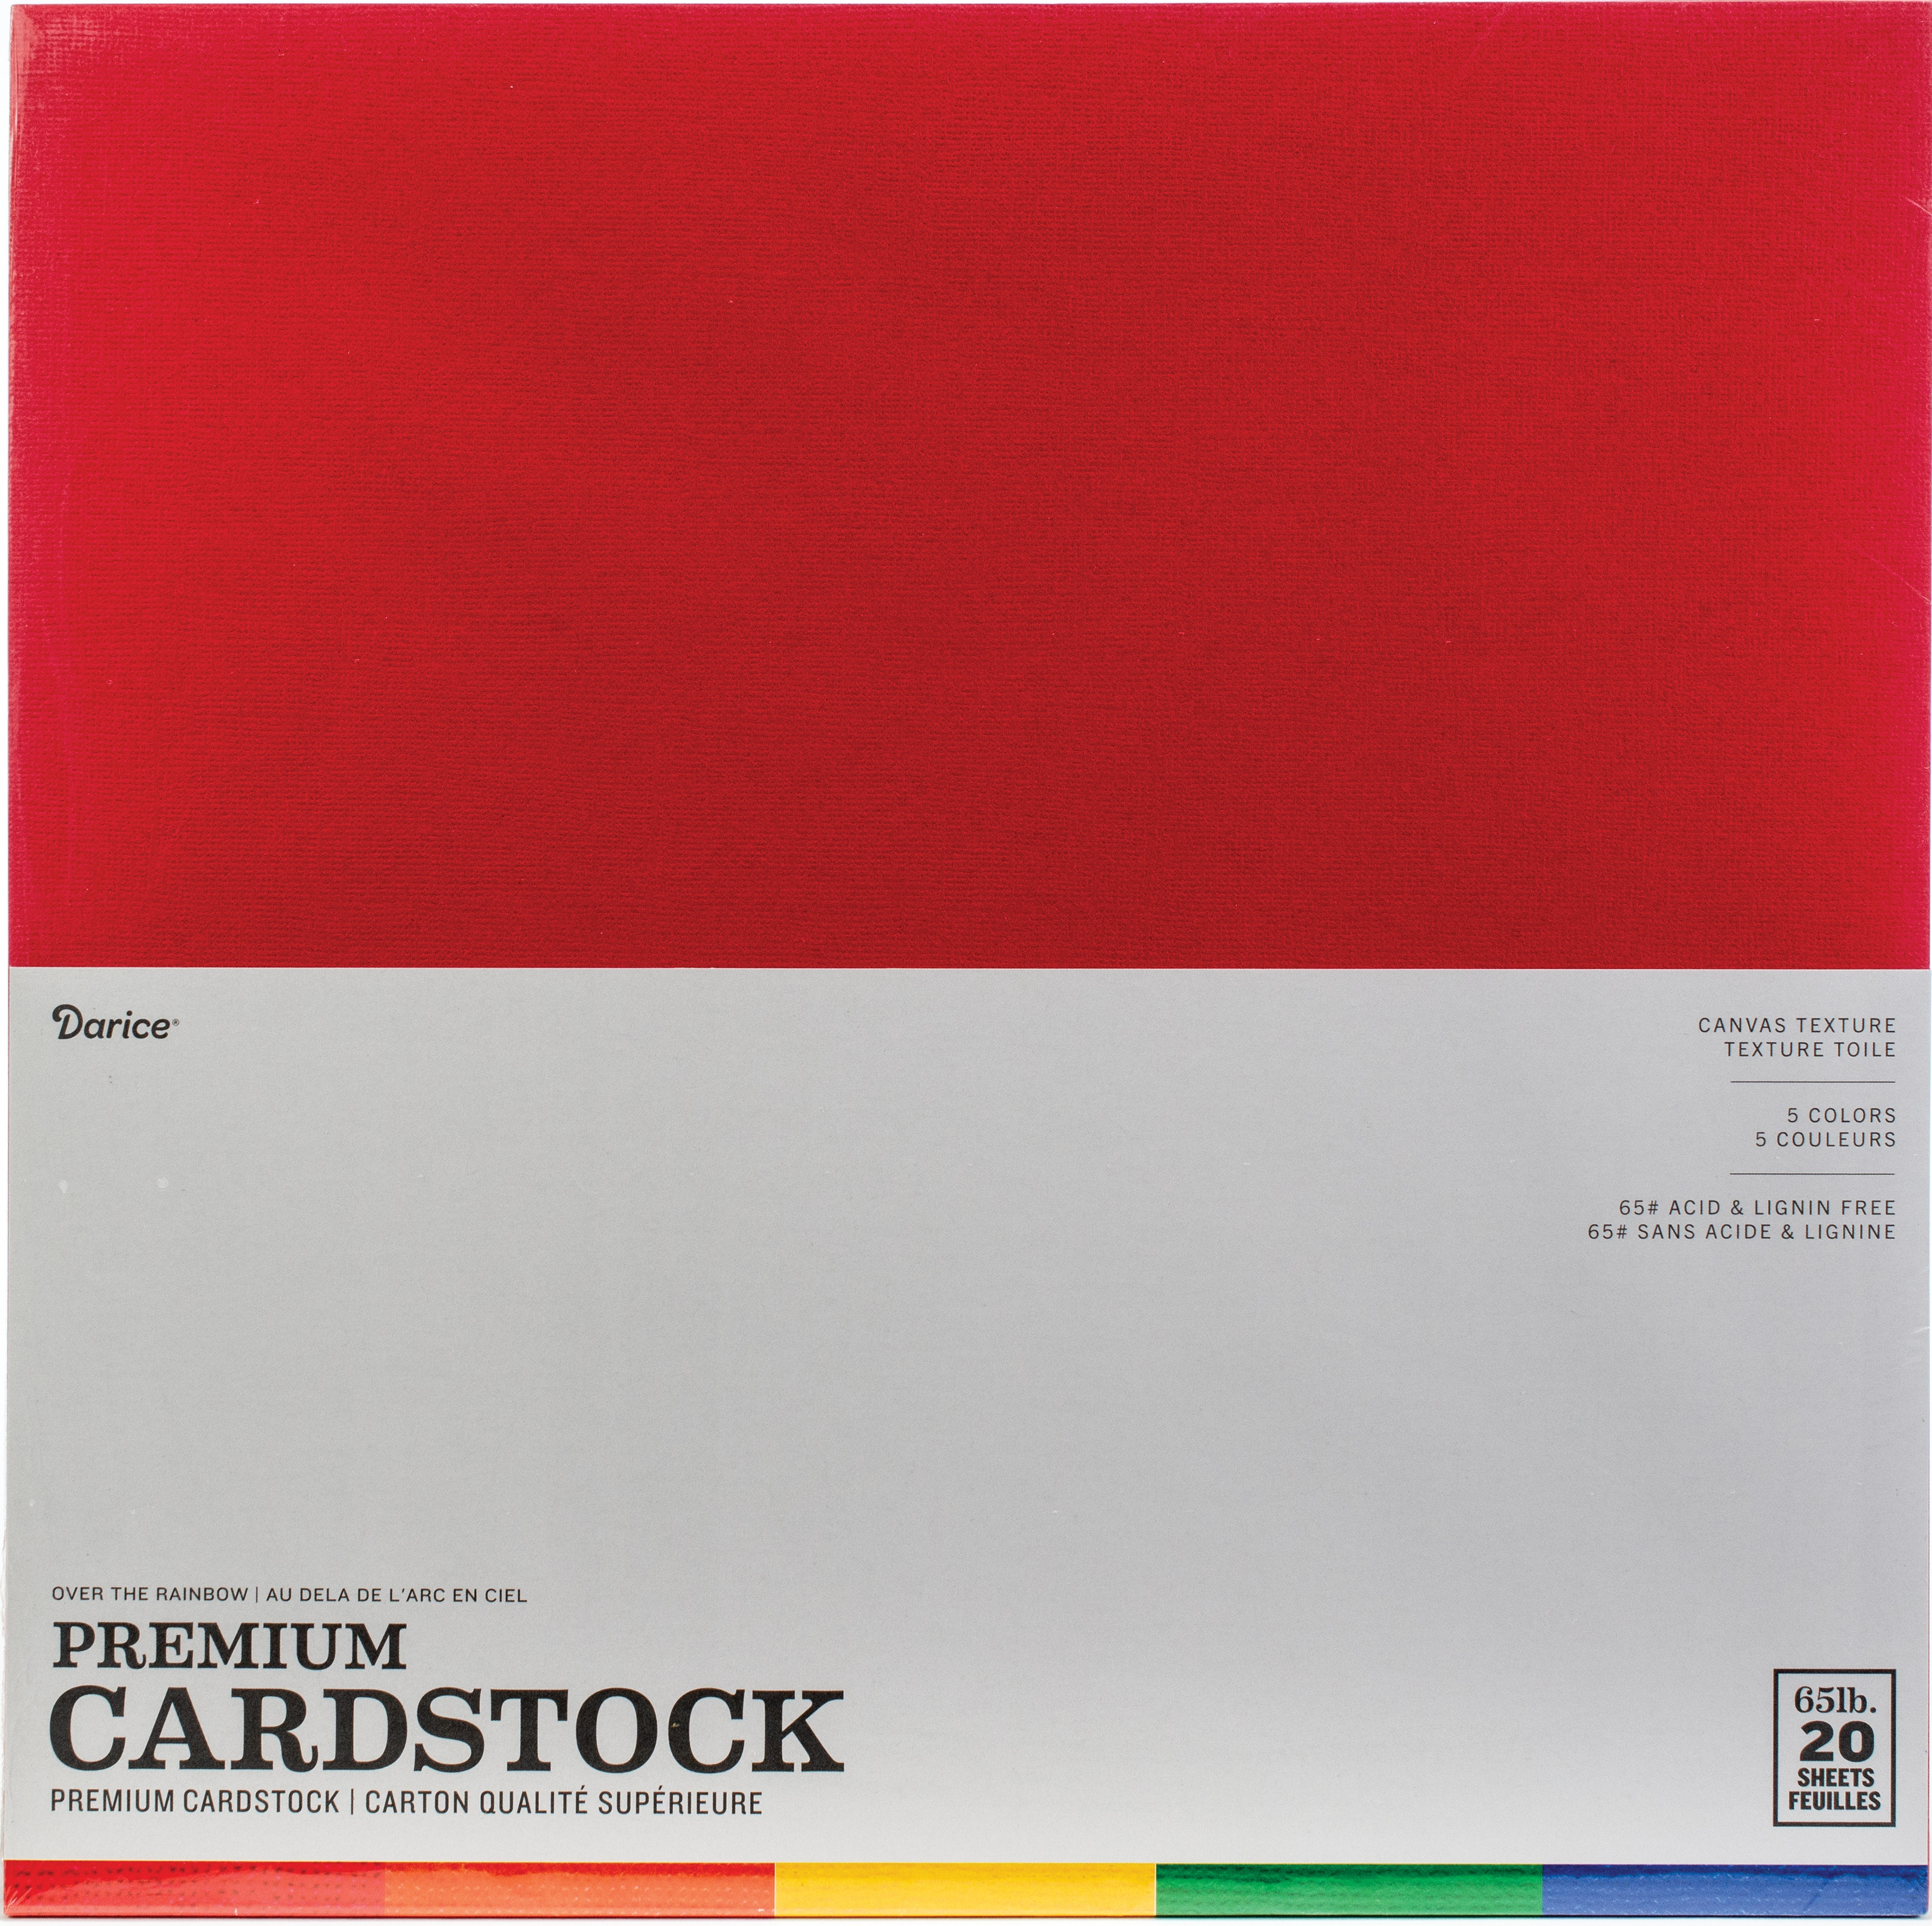 Over The Rainbow Cardstock Pack